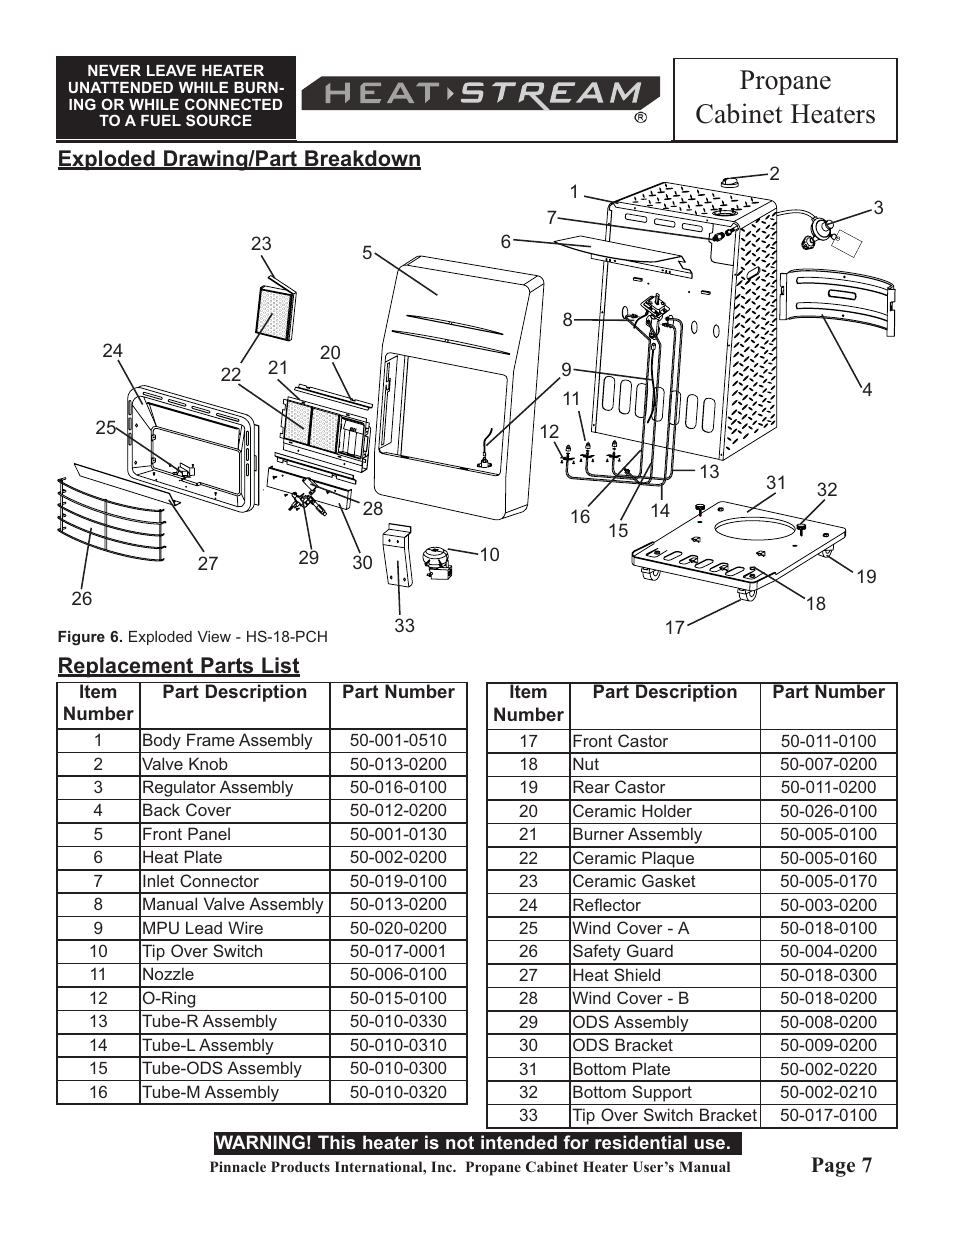 Propane cabinet heaters, Page 7 replacement parts list